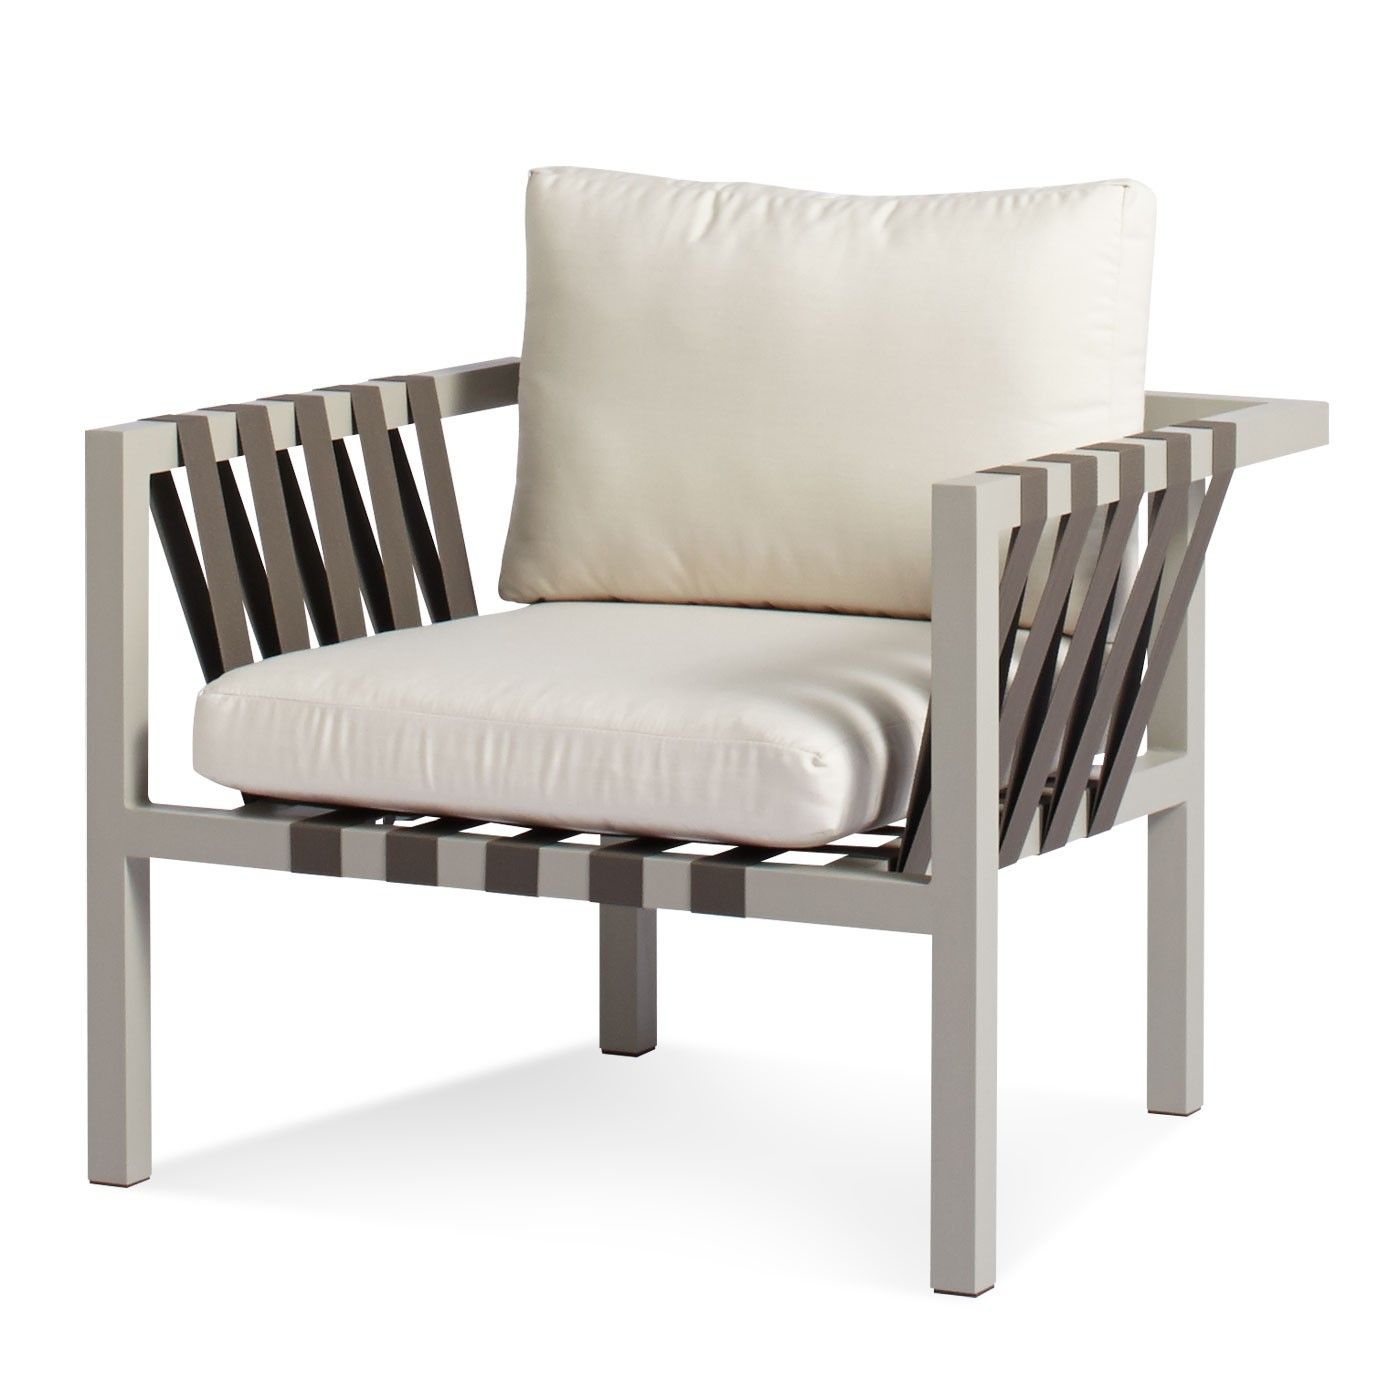 Lounge Sessel Modern Moderne Lounge Sessel Outdoor Wohn Design